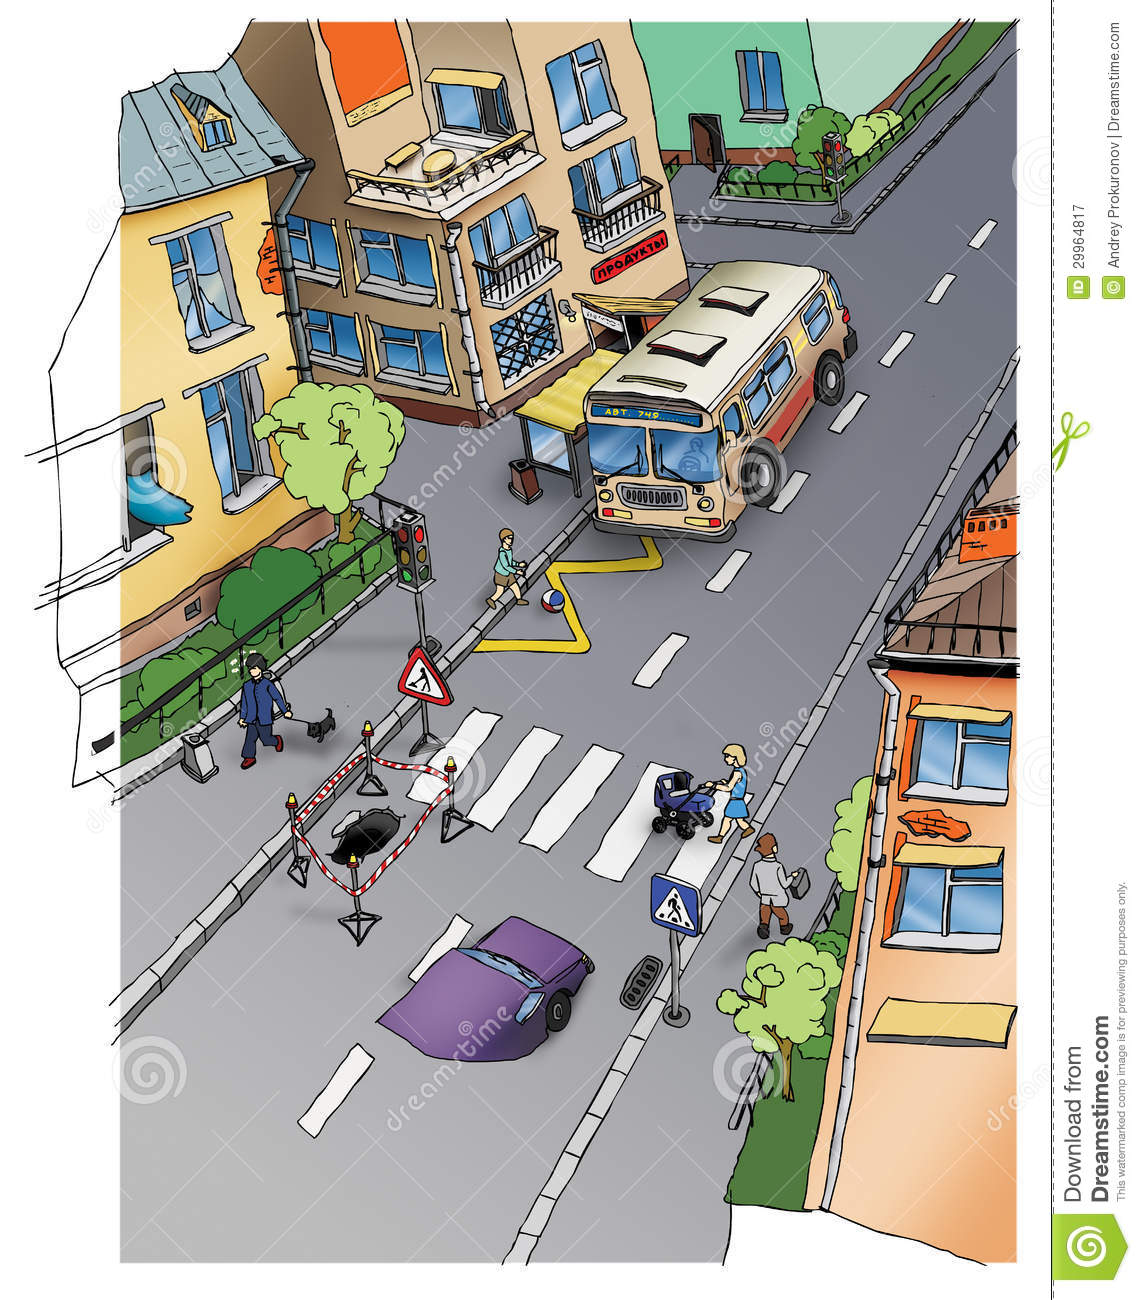 Road Safety Street Drawing Stock Illustration